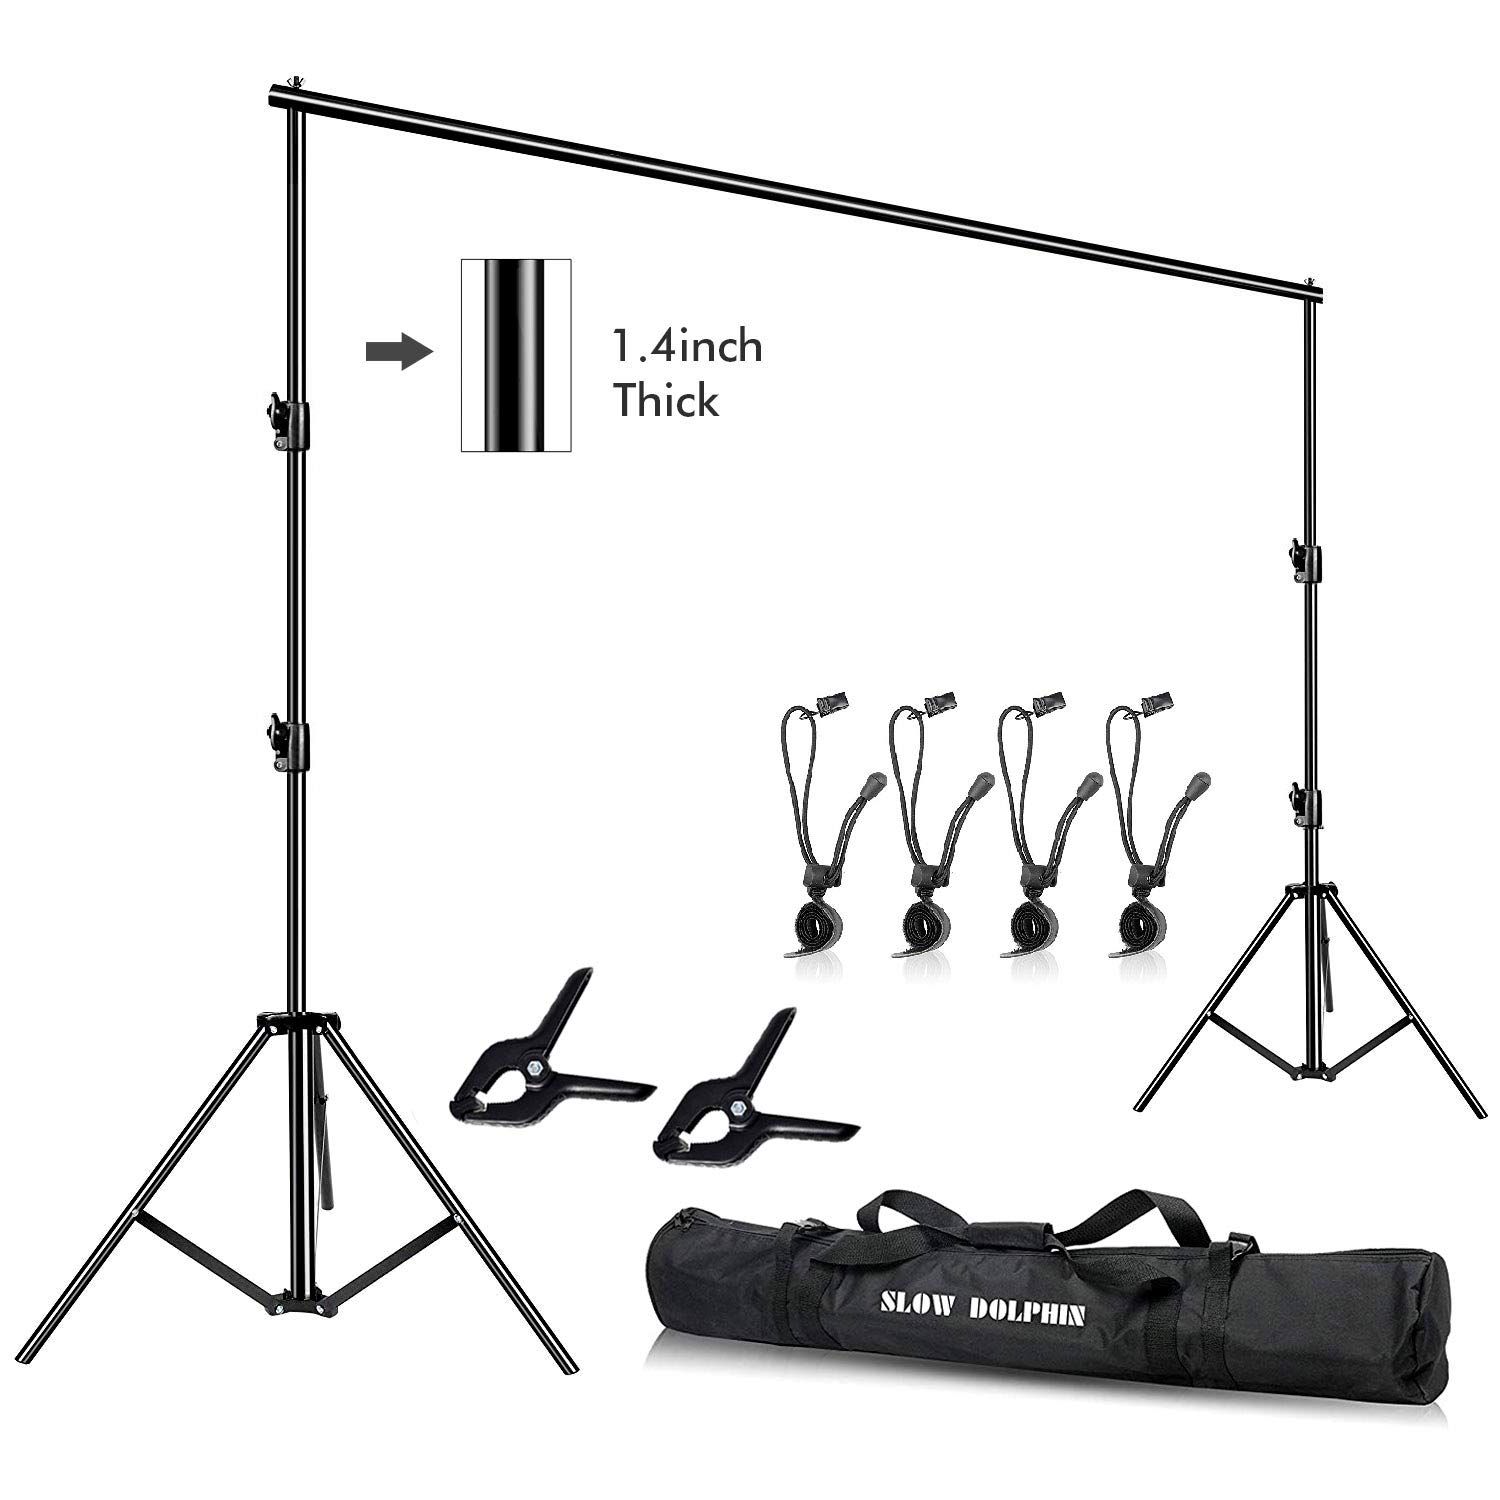 Slow Dolphin Photo Video Studio 12ft (W) x 10ft (H) Heavy Duty Adjustable Photography Backdrop Stand Background Support System Kit with Carry Bag by SLOW DOLPHIN